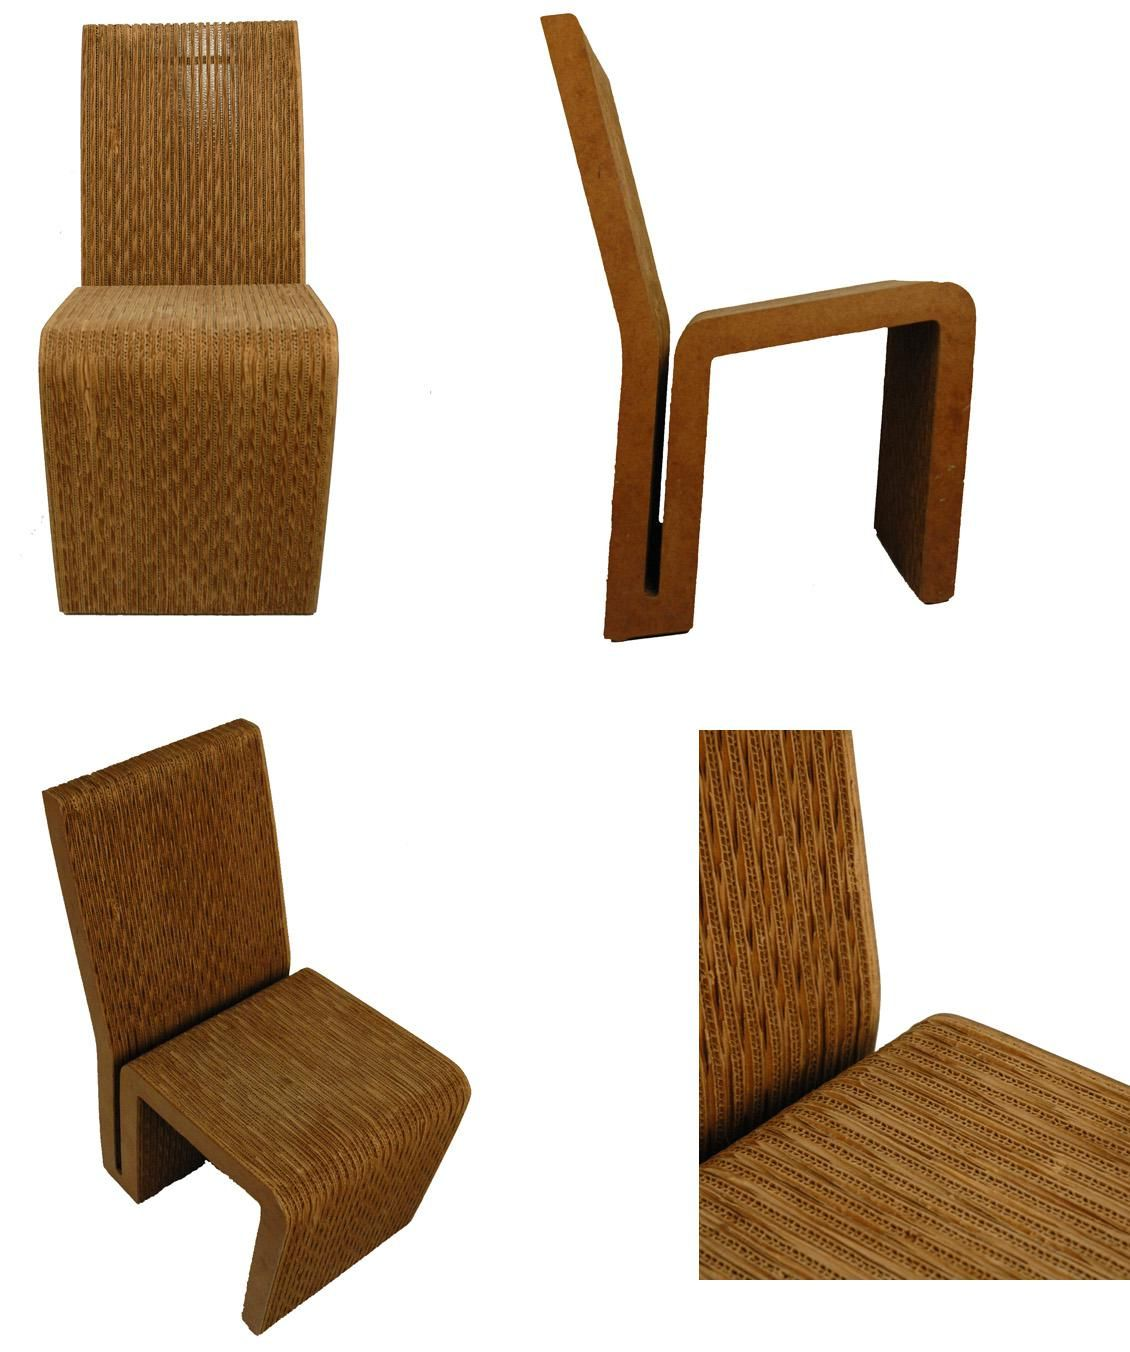 Chair Side Frank Gehry Easy Edges Frank Gehry Pinterest  # Frank Gehry Muebles De Carton